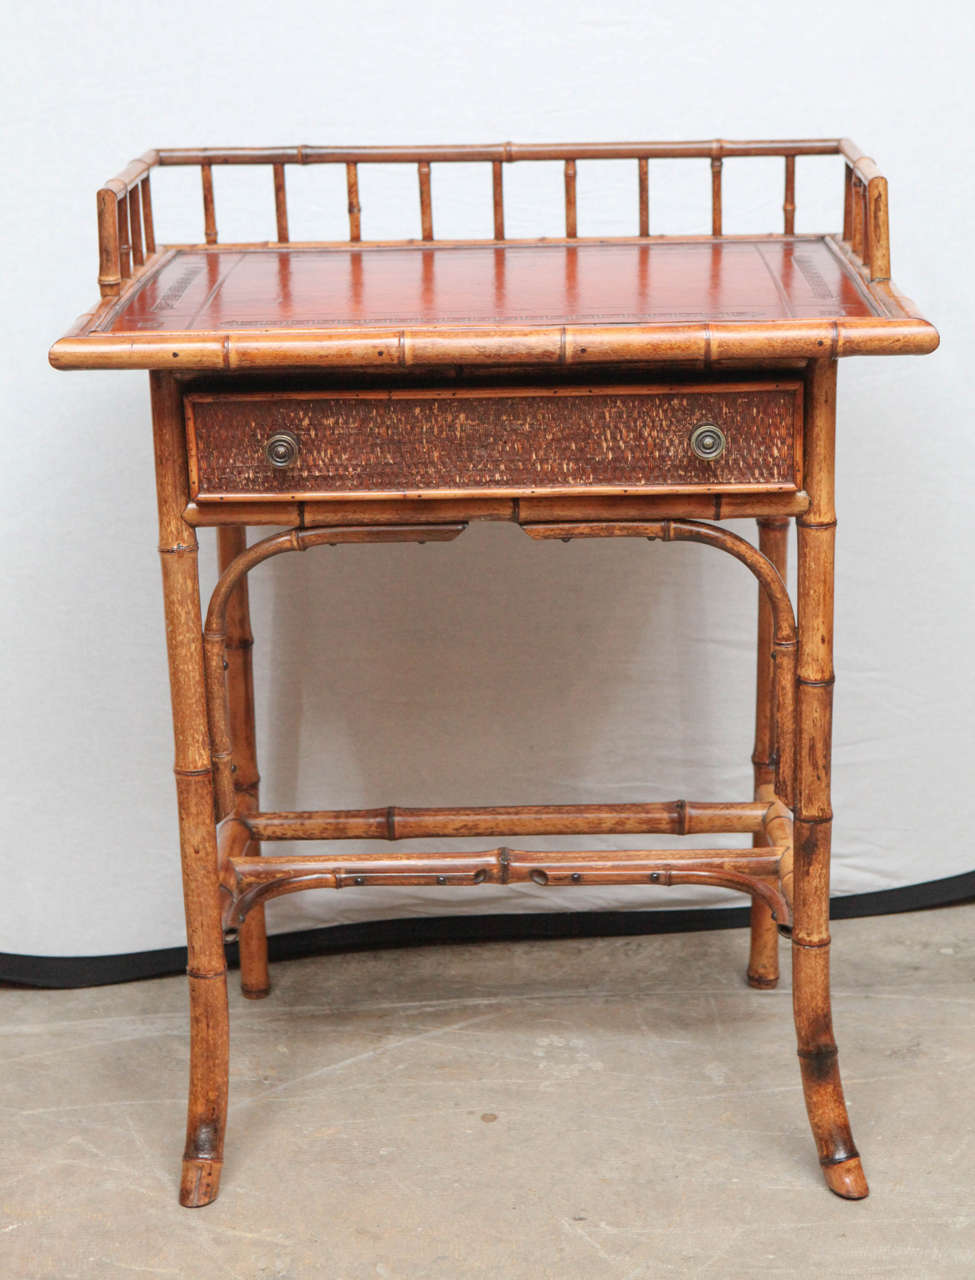 19th century English bamboo writing table with single drawer and tooled leather top. Can also be used as nightstand or end table.